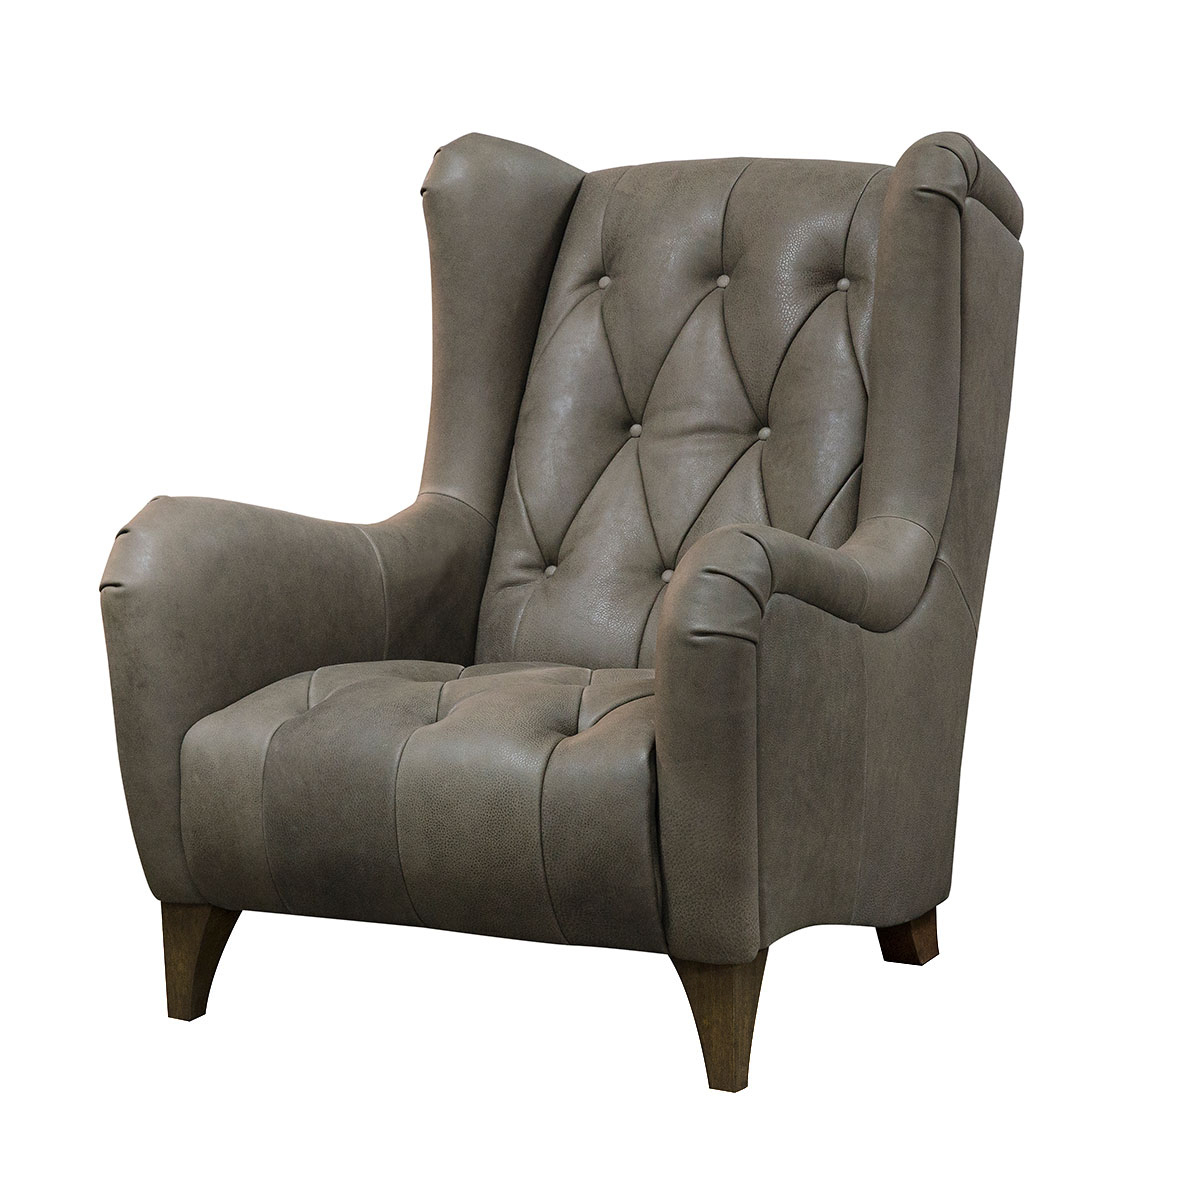 Alexander & James Viola Armchair – Leather Throughout James Armchairs (View 13 of 15)